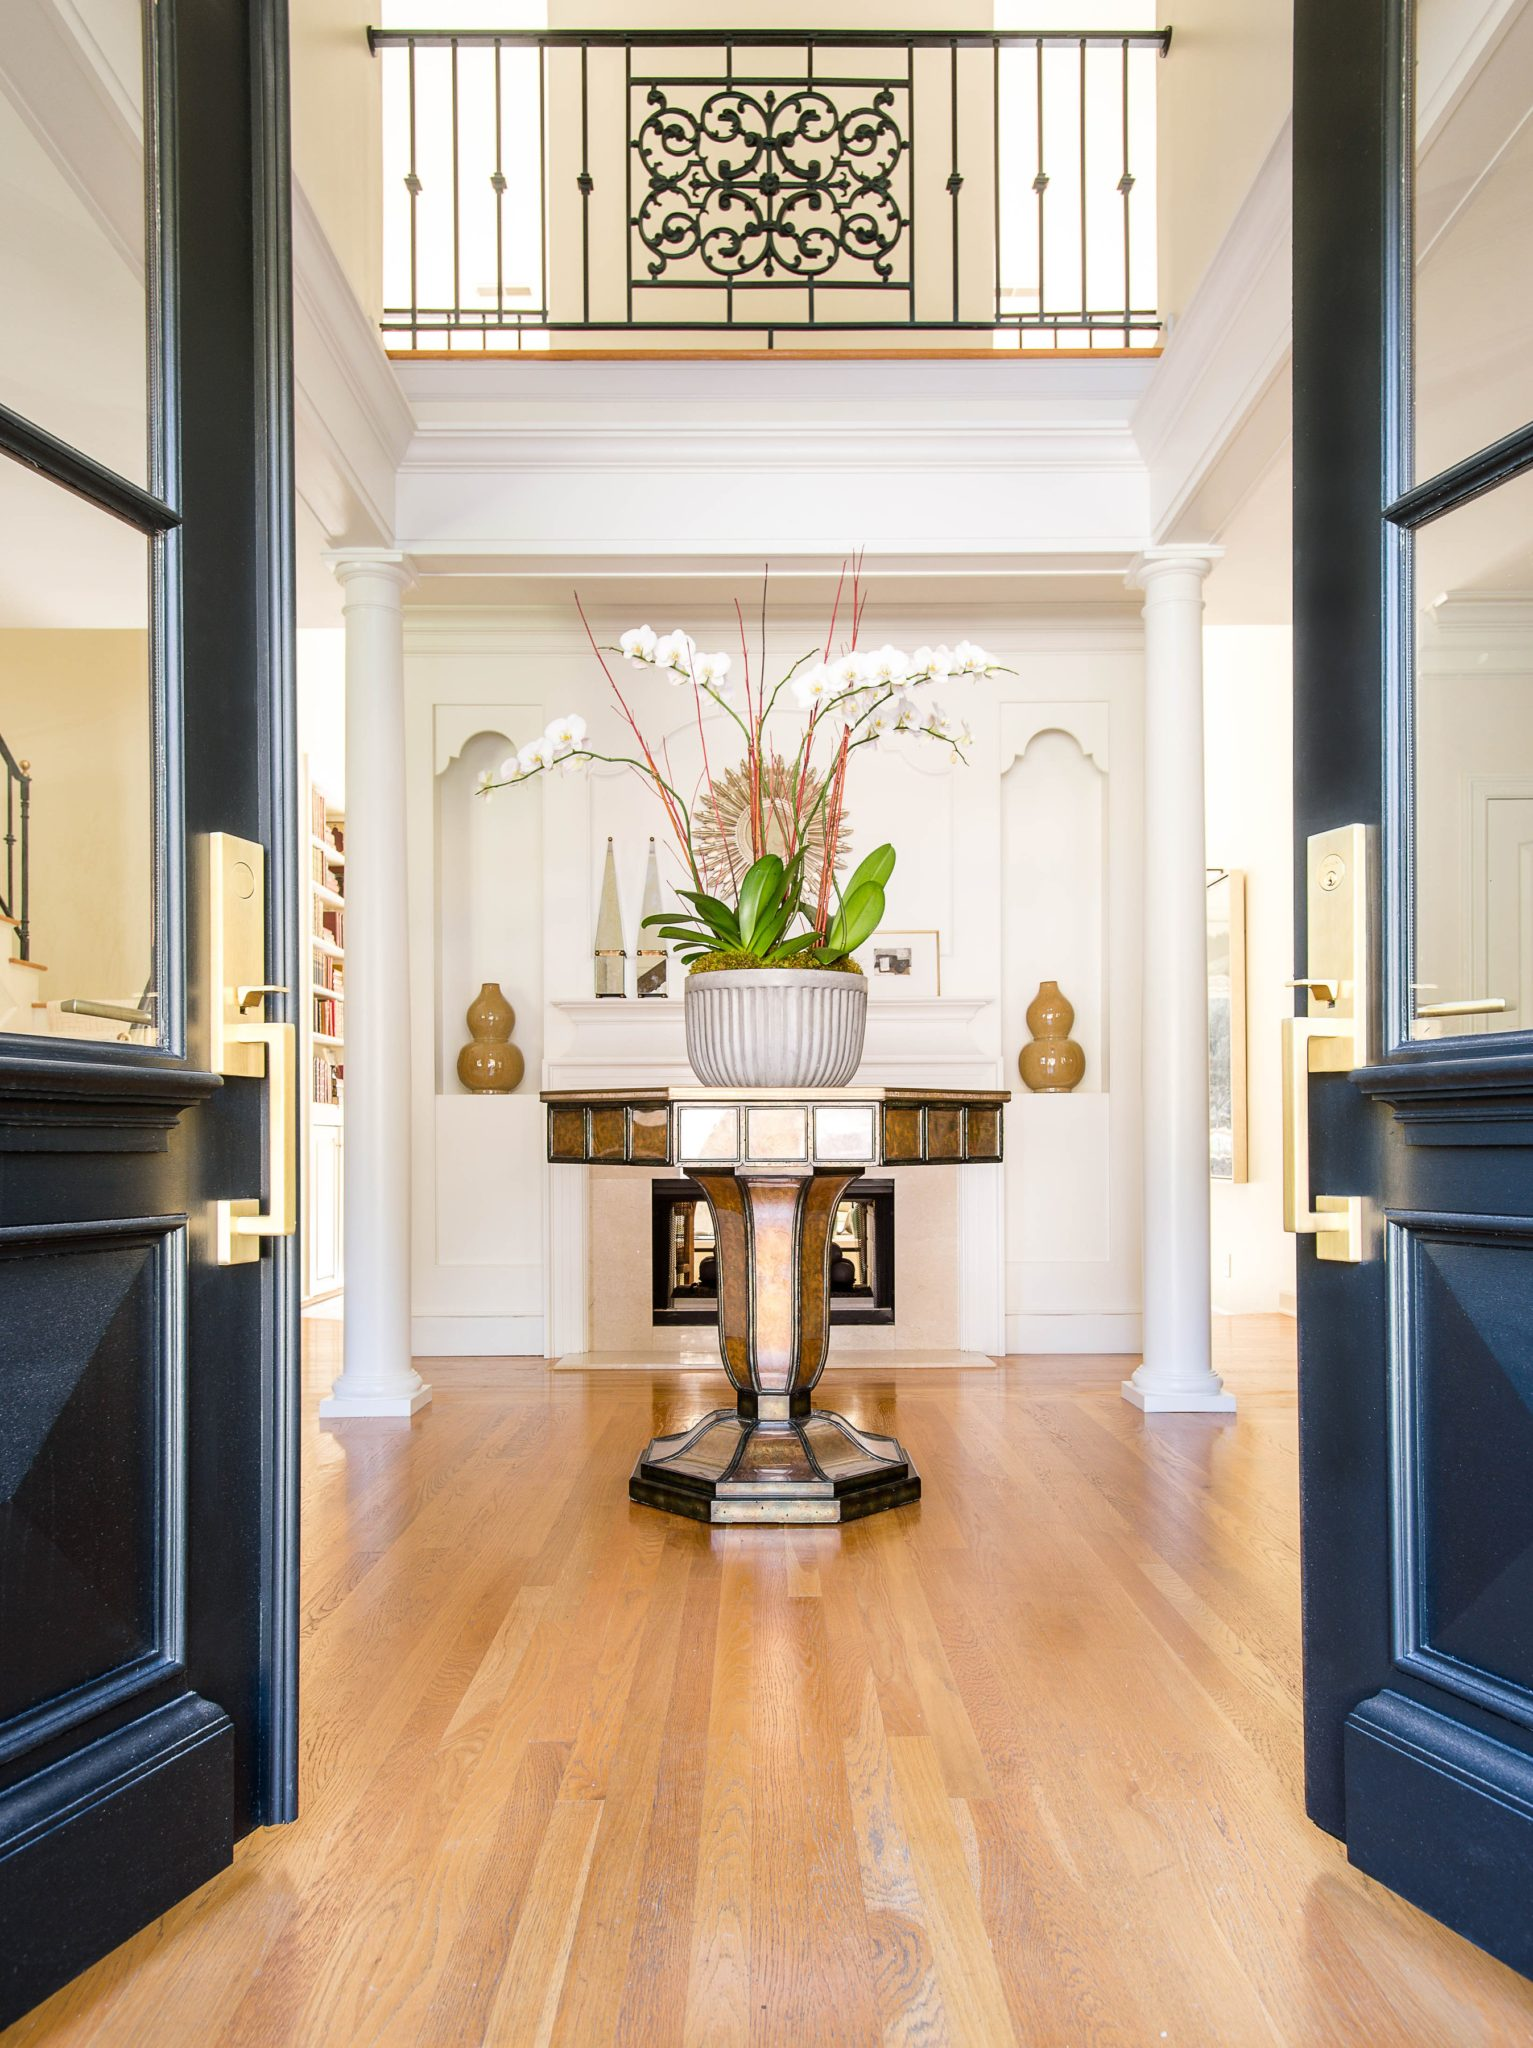 """11. Dark-Colored Doors    From deep blues and greens to solid black, a dark-painted door adds drama to any space. """"Dark-colored doors work with many architectural styles,"""" saysJonathanSavage ofSAVAGE Interior Design.""""This style will continue in 2020 as it's a great way to emphasize a front entrance. A dark-colored door adds impact and dimension to a foyer or entryway.""""  Here, Savage uses adeep green door, which he says """"grounds the home while being welcoming and inviting at the same time. It adds richness and depth to a small intimate space."""""""